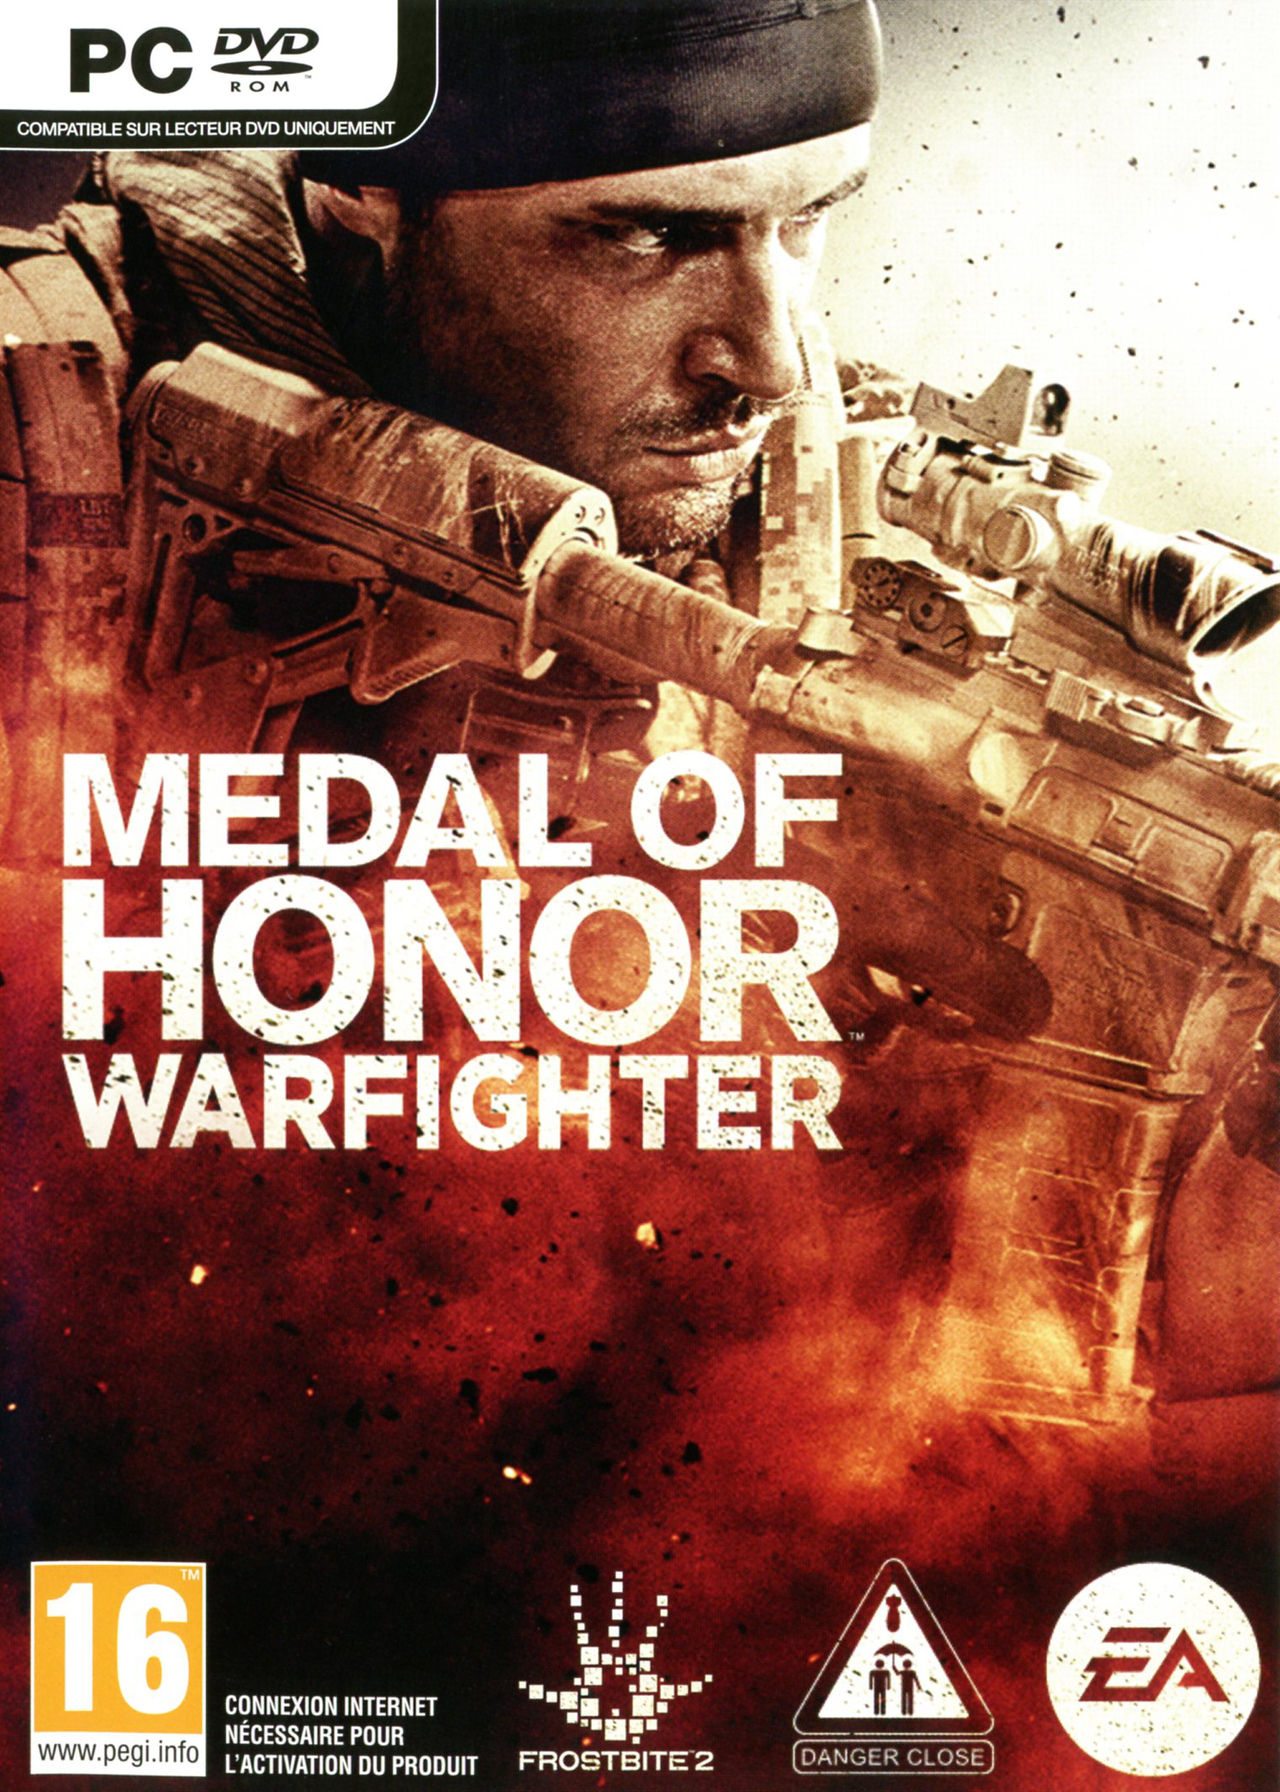 ����medal of honor: Warfighter ������ �����  ����